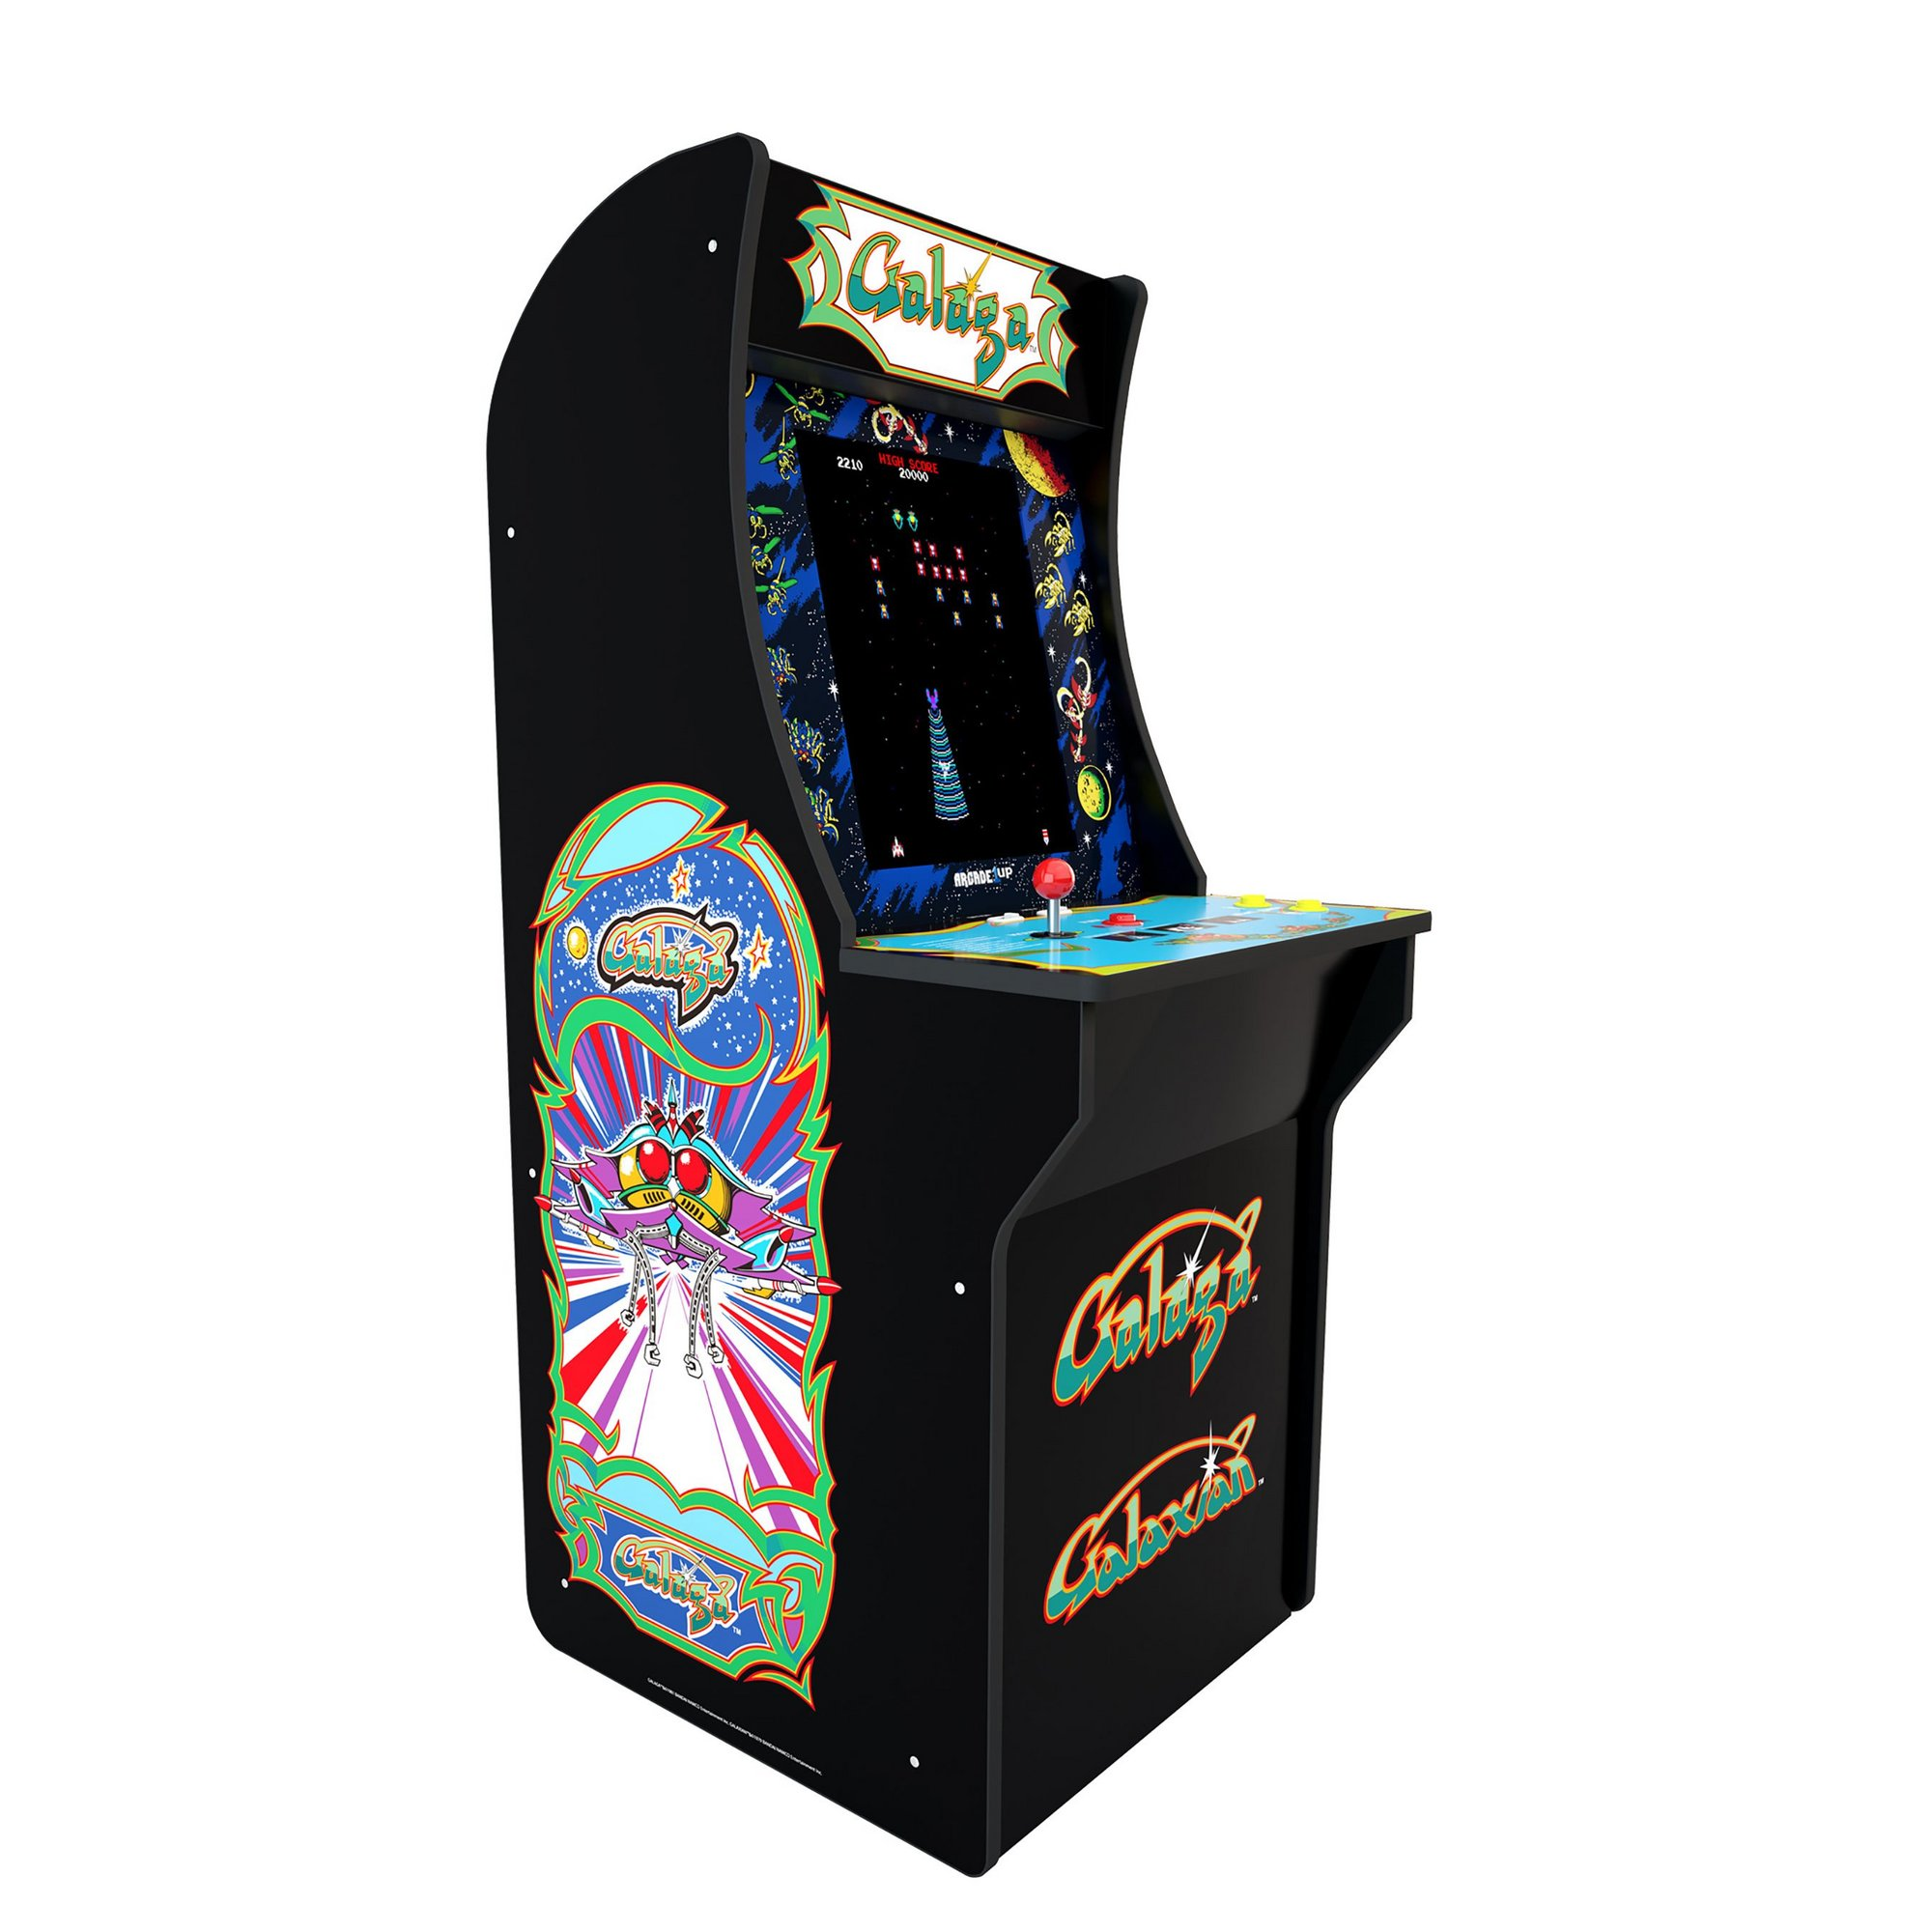 Image of Arcade1Up: Galaga